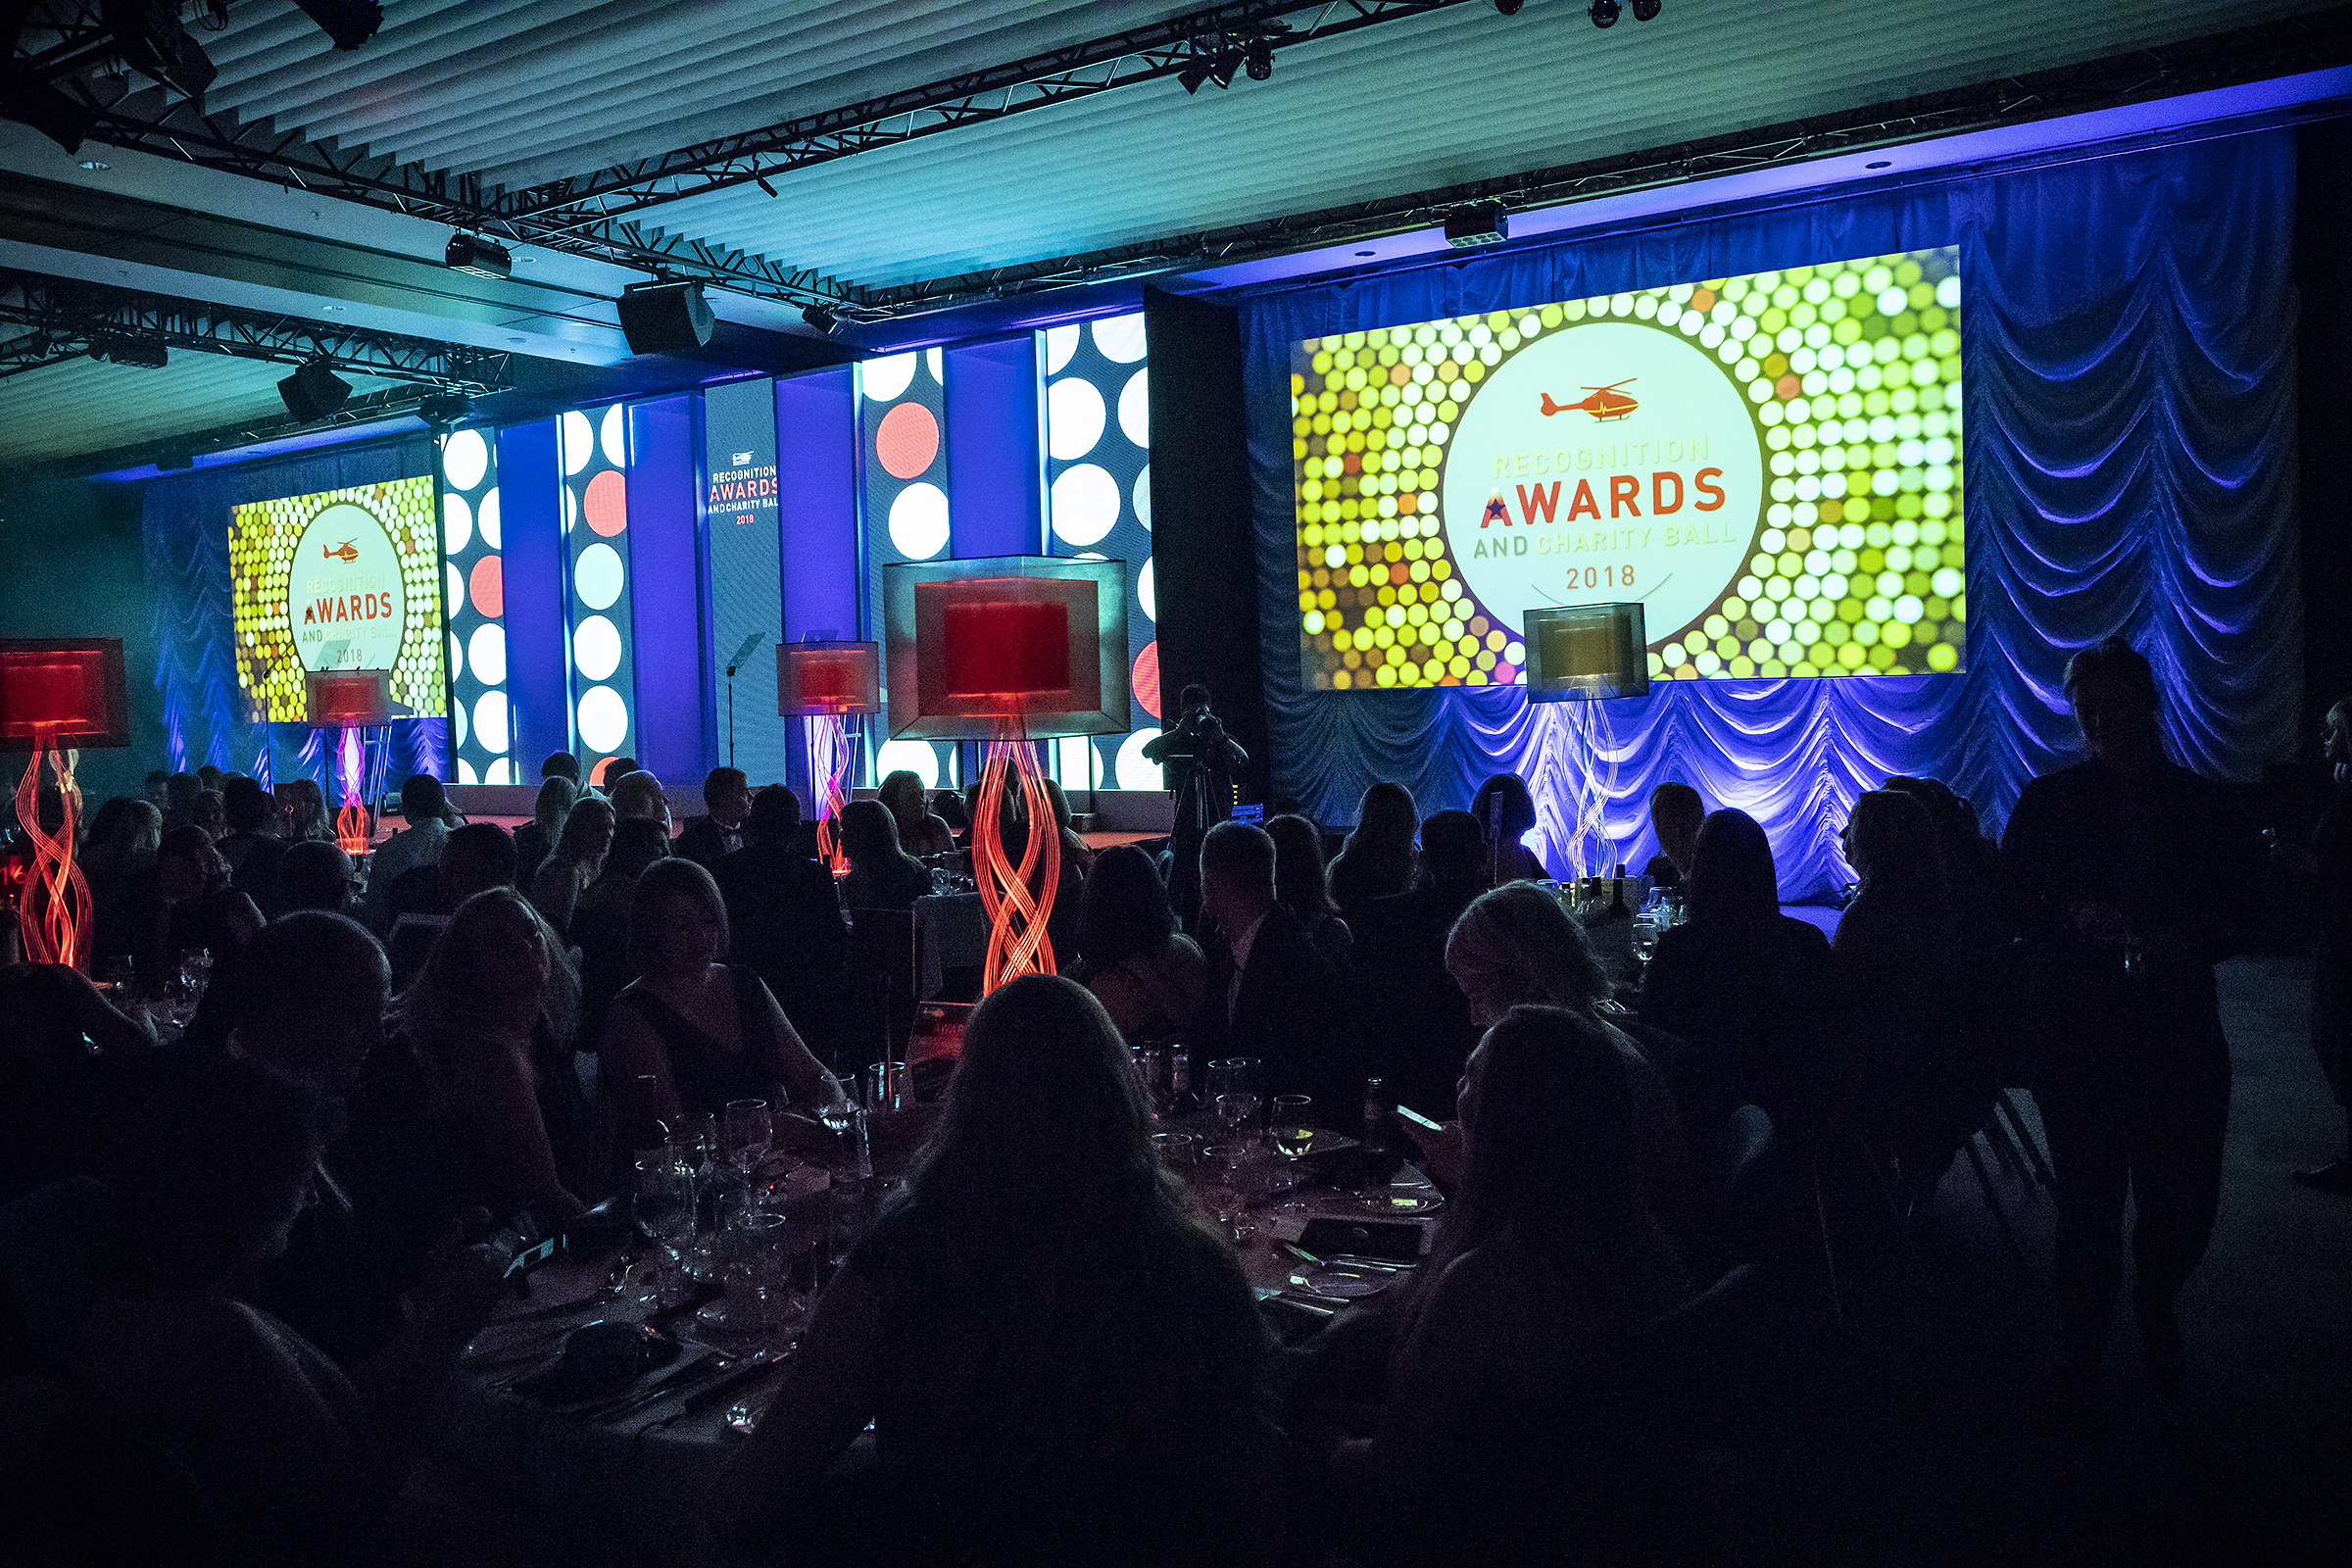 Midlands Air Ambulance Charity's seventh 'Recognition Awards and Charity Ball' raised more than £130,000.